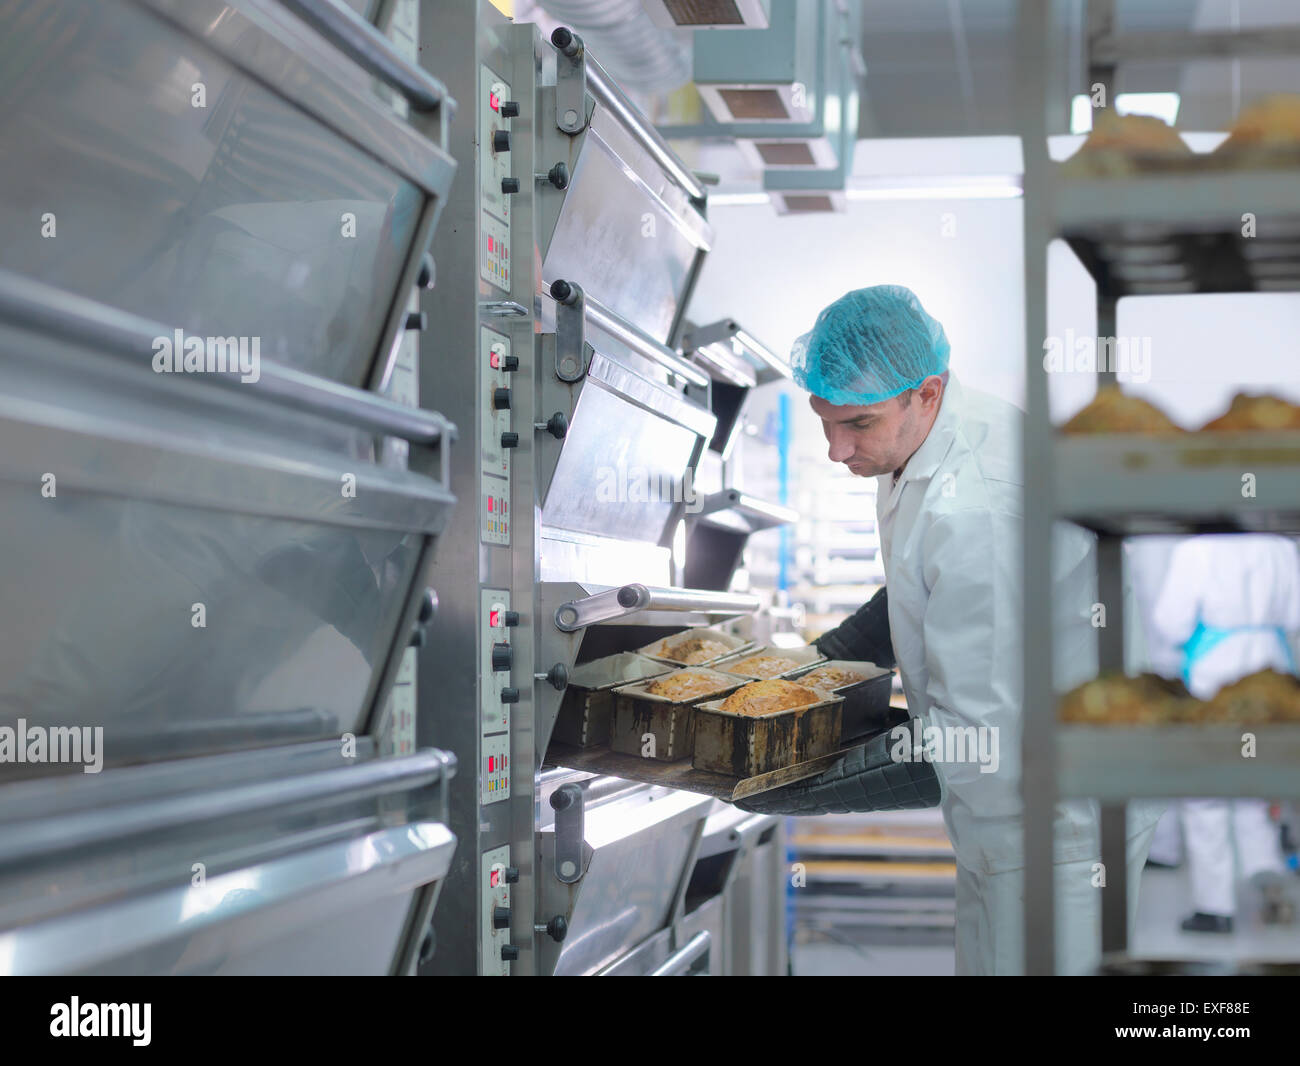 Baker taking cakes out of oven in cake factory - Stock Image